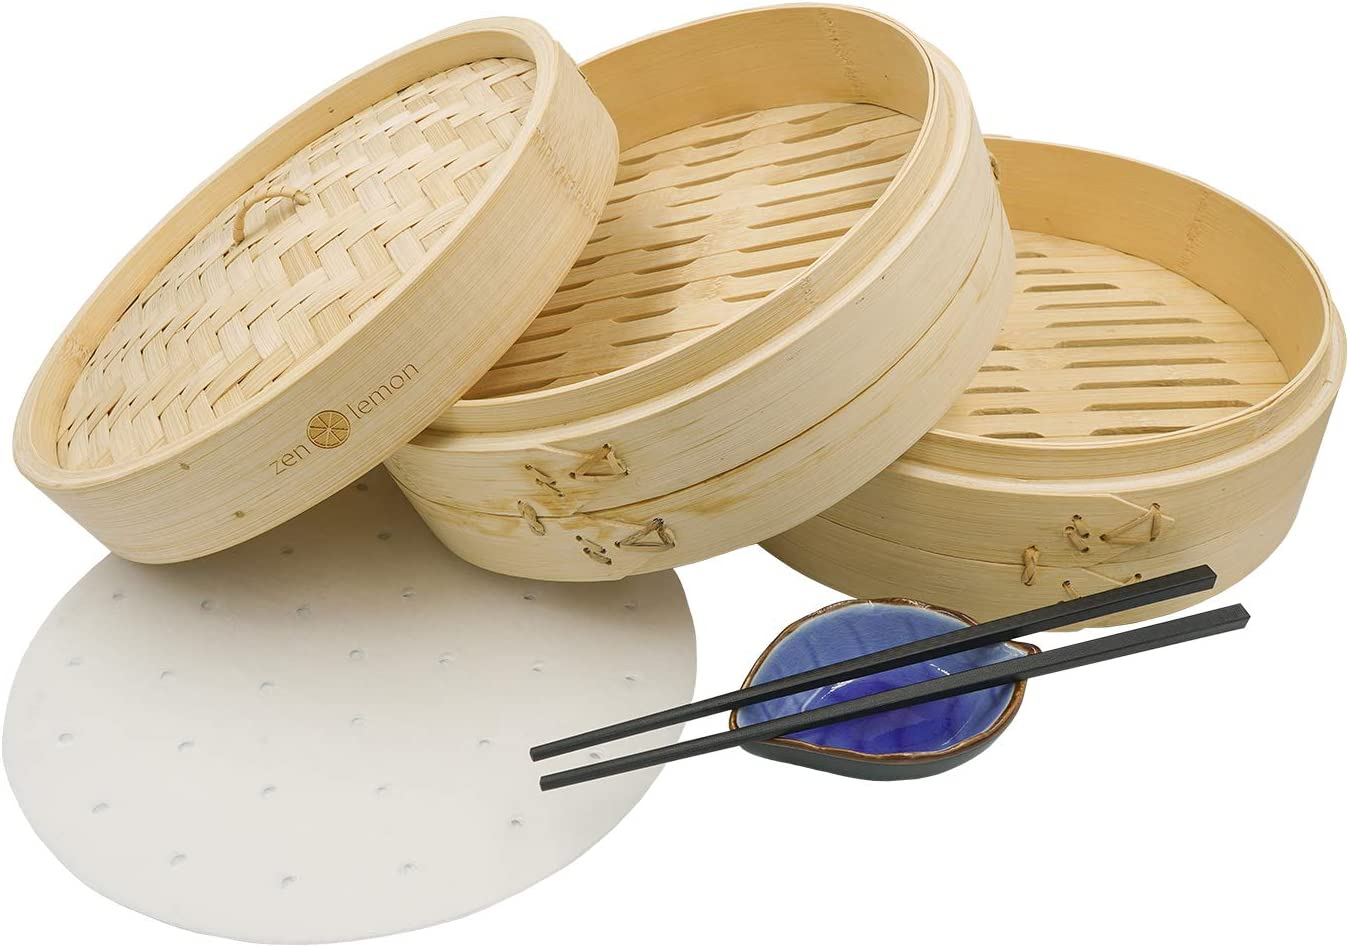 Bamboo Steamer 10 Inch - Handmade Steam Basket Bamboo - 2 Tier Dumpling Steamer Ideal For Dim Sum, Vegetables, Bao Buns & More - 2 Sets of Reusable Chopsticks, 20 Liners, Ceramic Sauce Dish Included